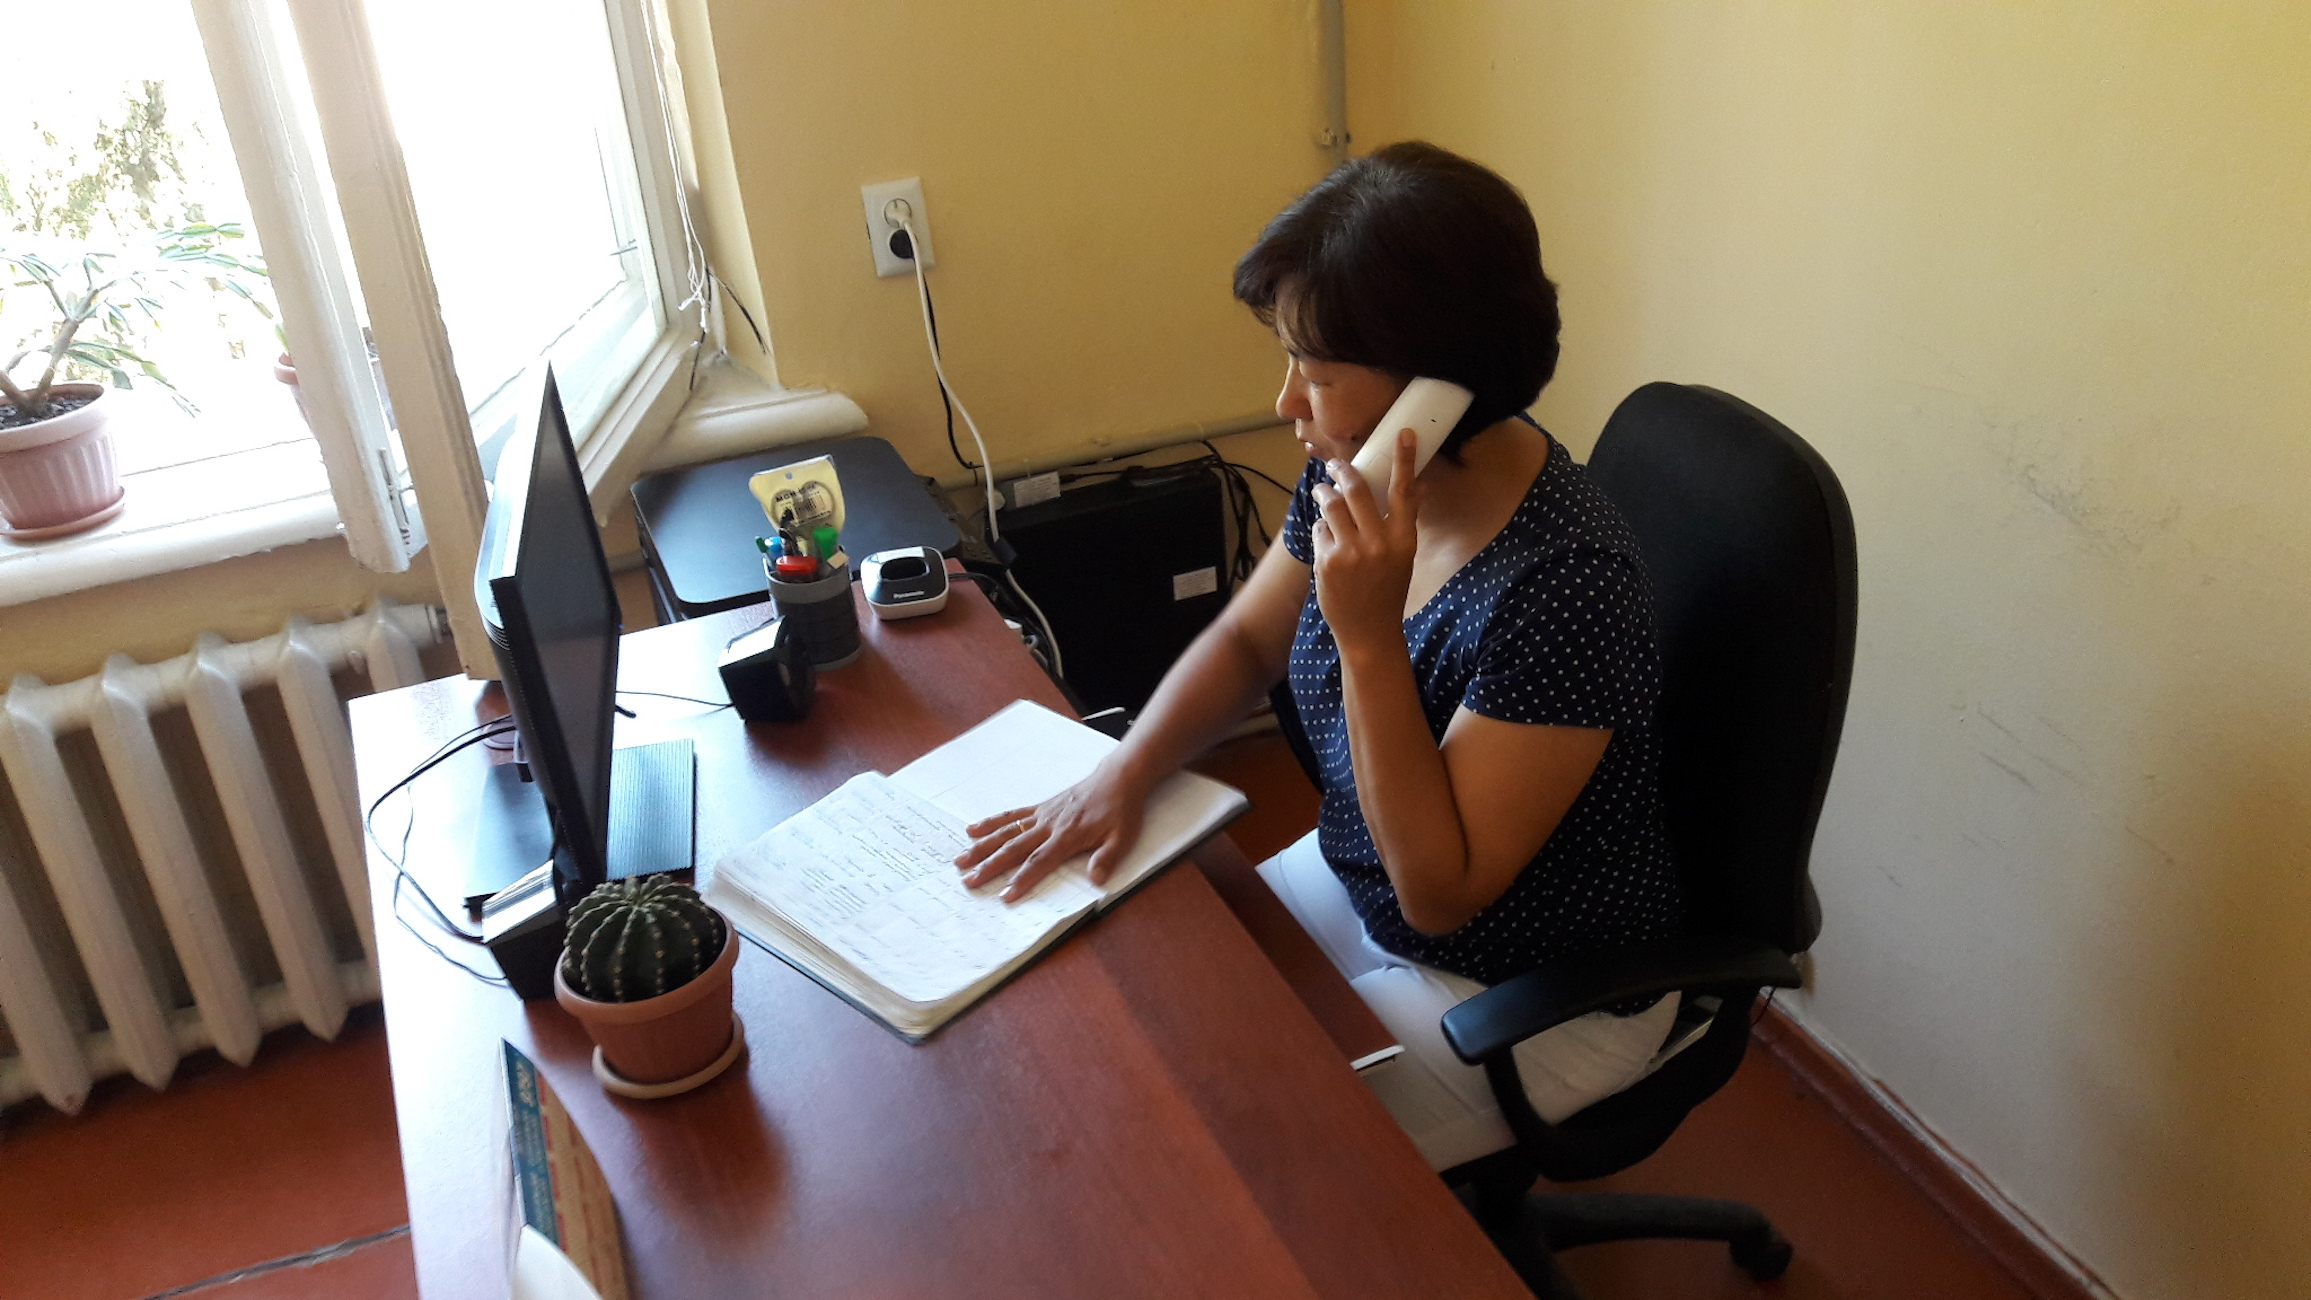 Kyrgyz anti-extremism hotline provides advice, anonymity